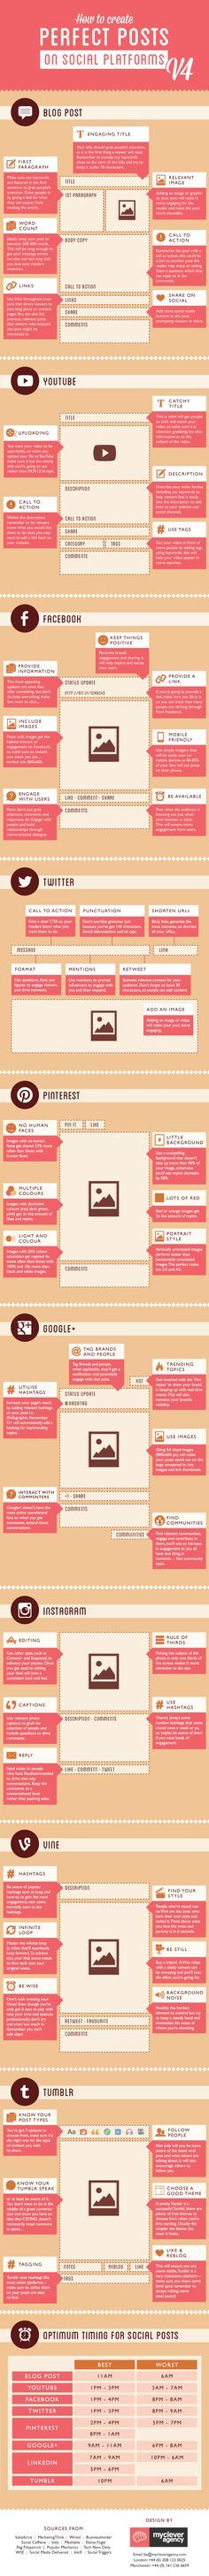 How To Create Perfect Posts for Blog, YouTube, Tumblr, Vine, Google+, Facebook & Twitter: Version 4 [Infographic]